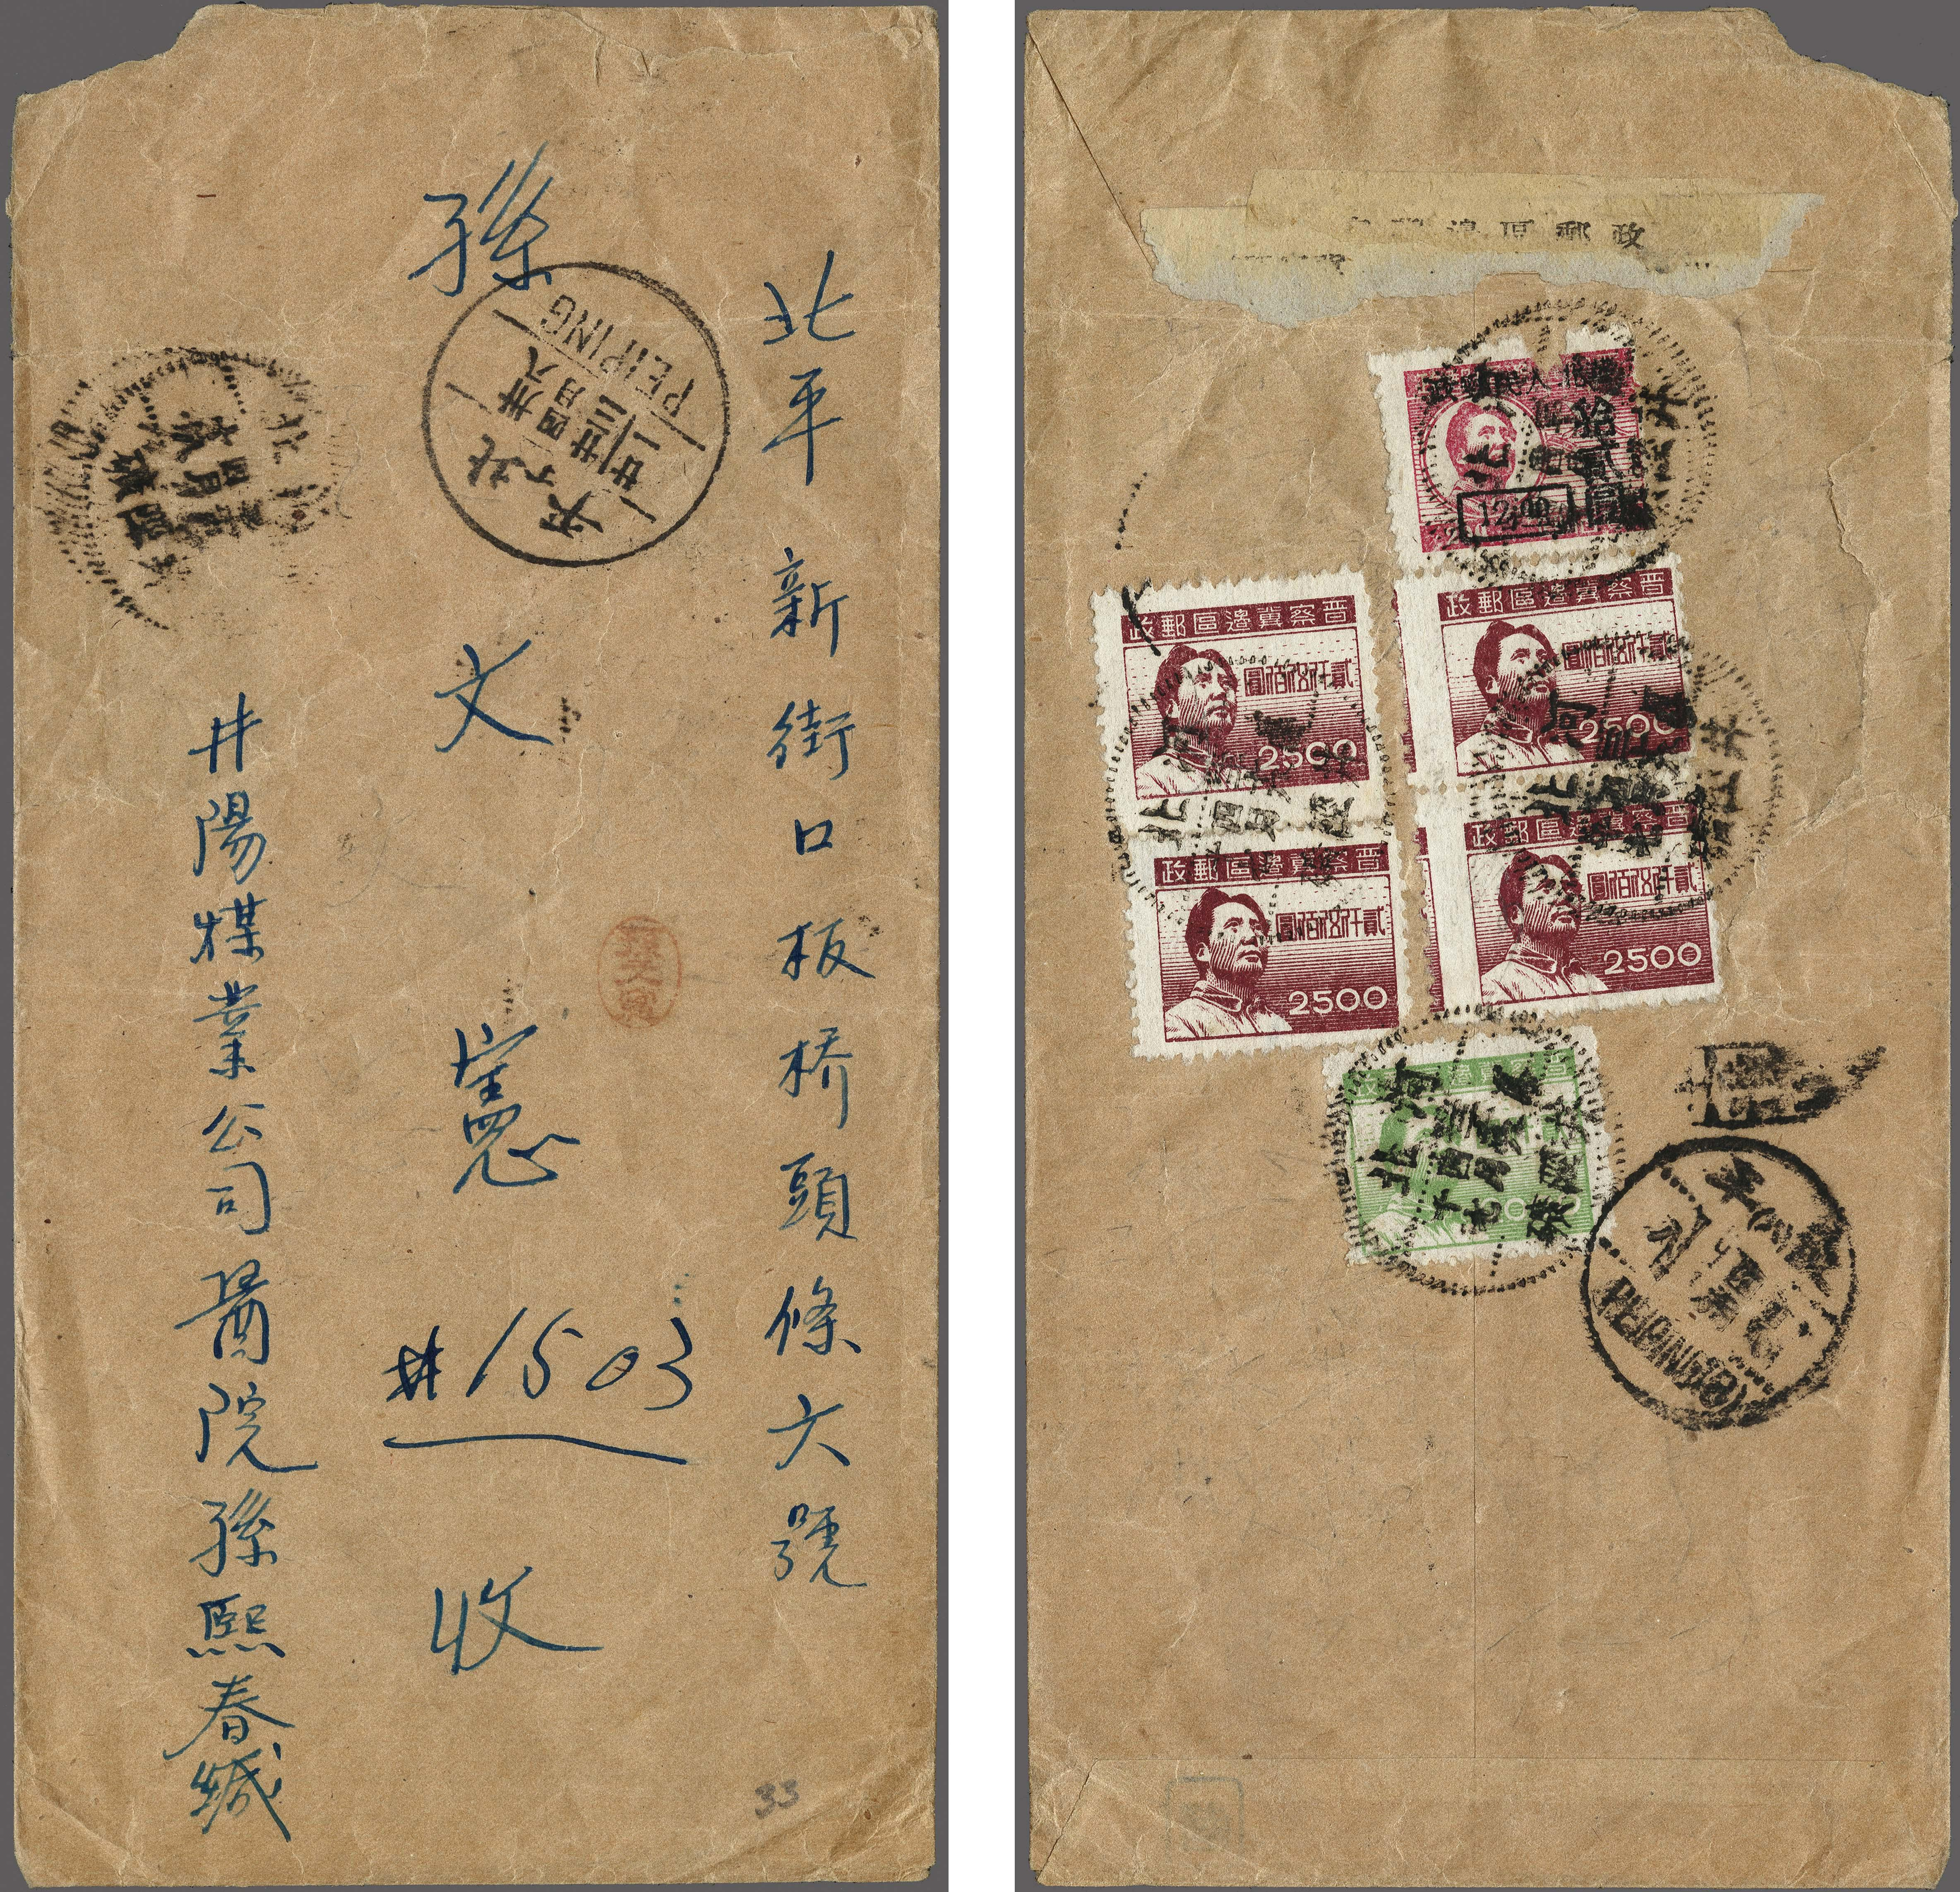 Lot 57 - China China Northern Provinces -  Corinphila Veilingen Auction 250-253 - Day 1 - Foreign countries